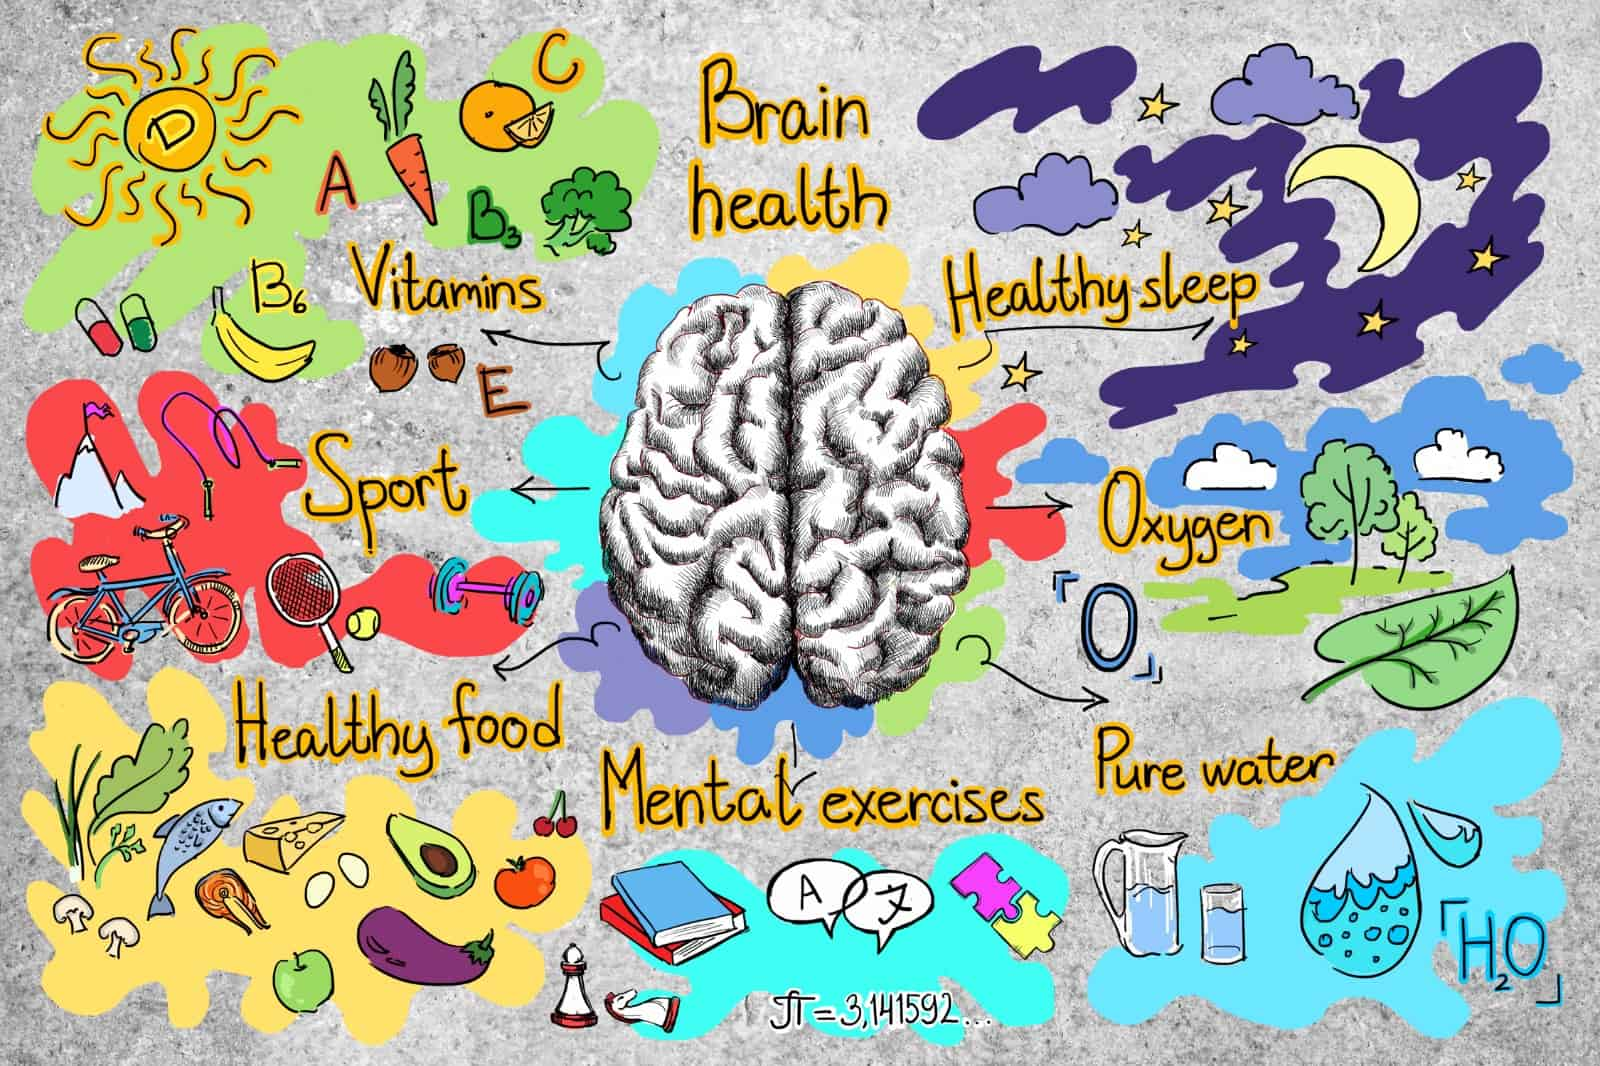 5 Effective Ways to Improve Your Brain Health